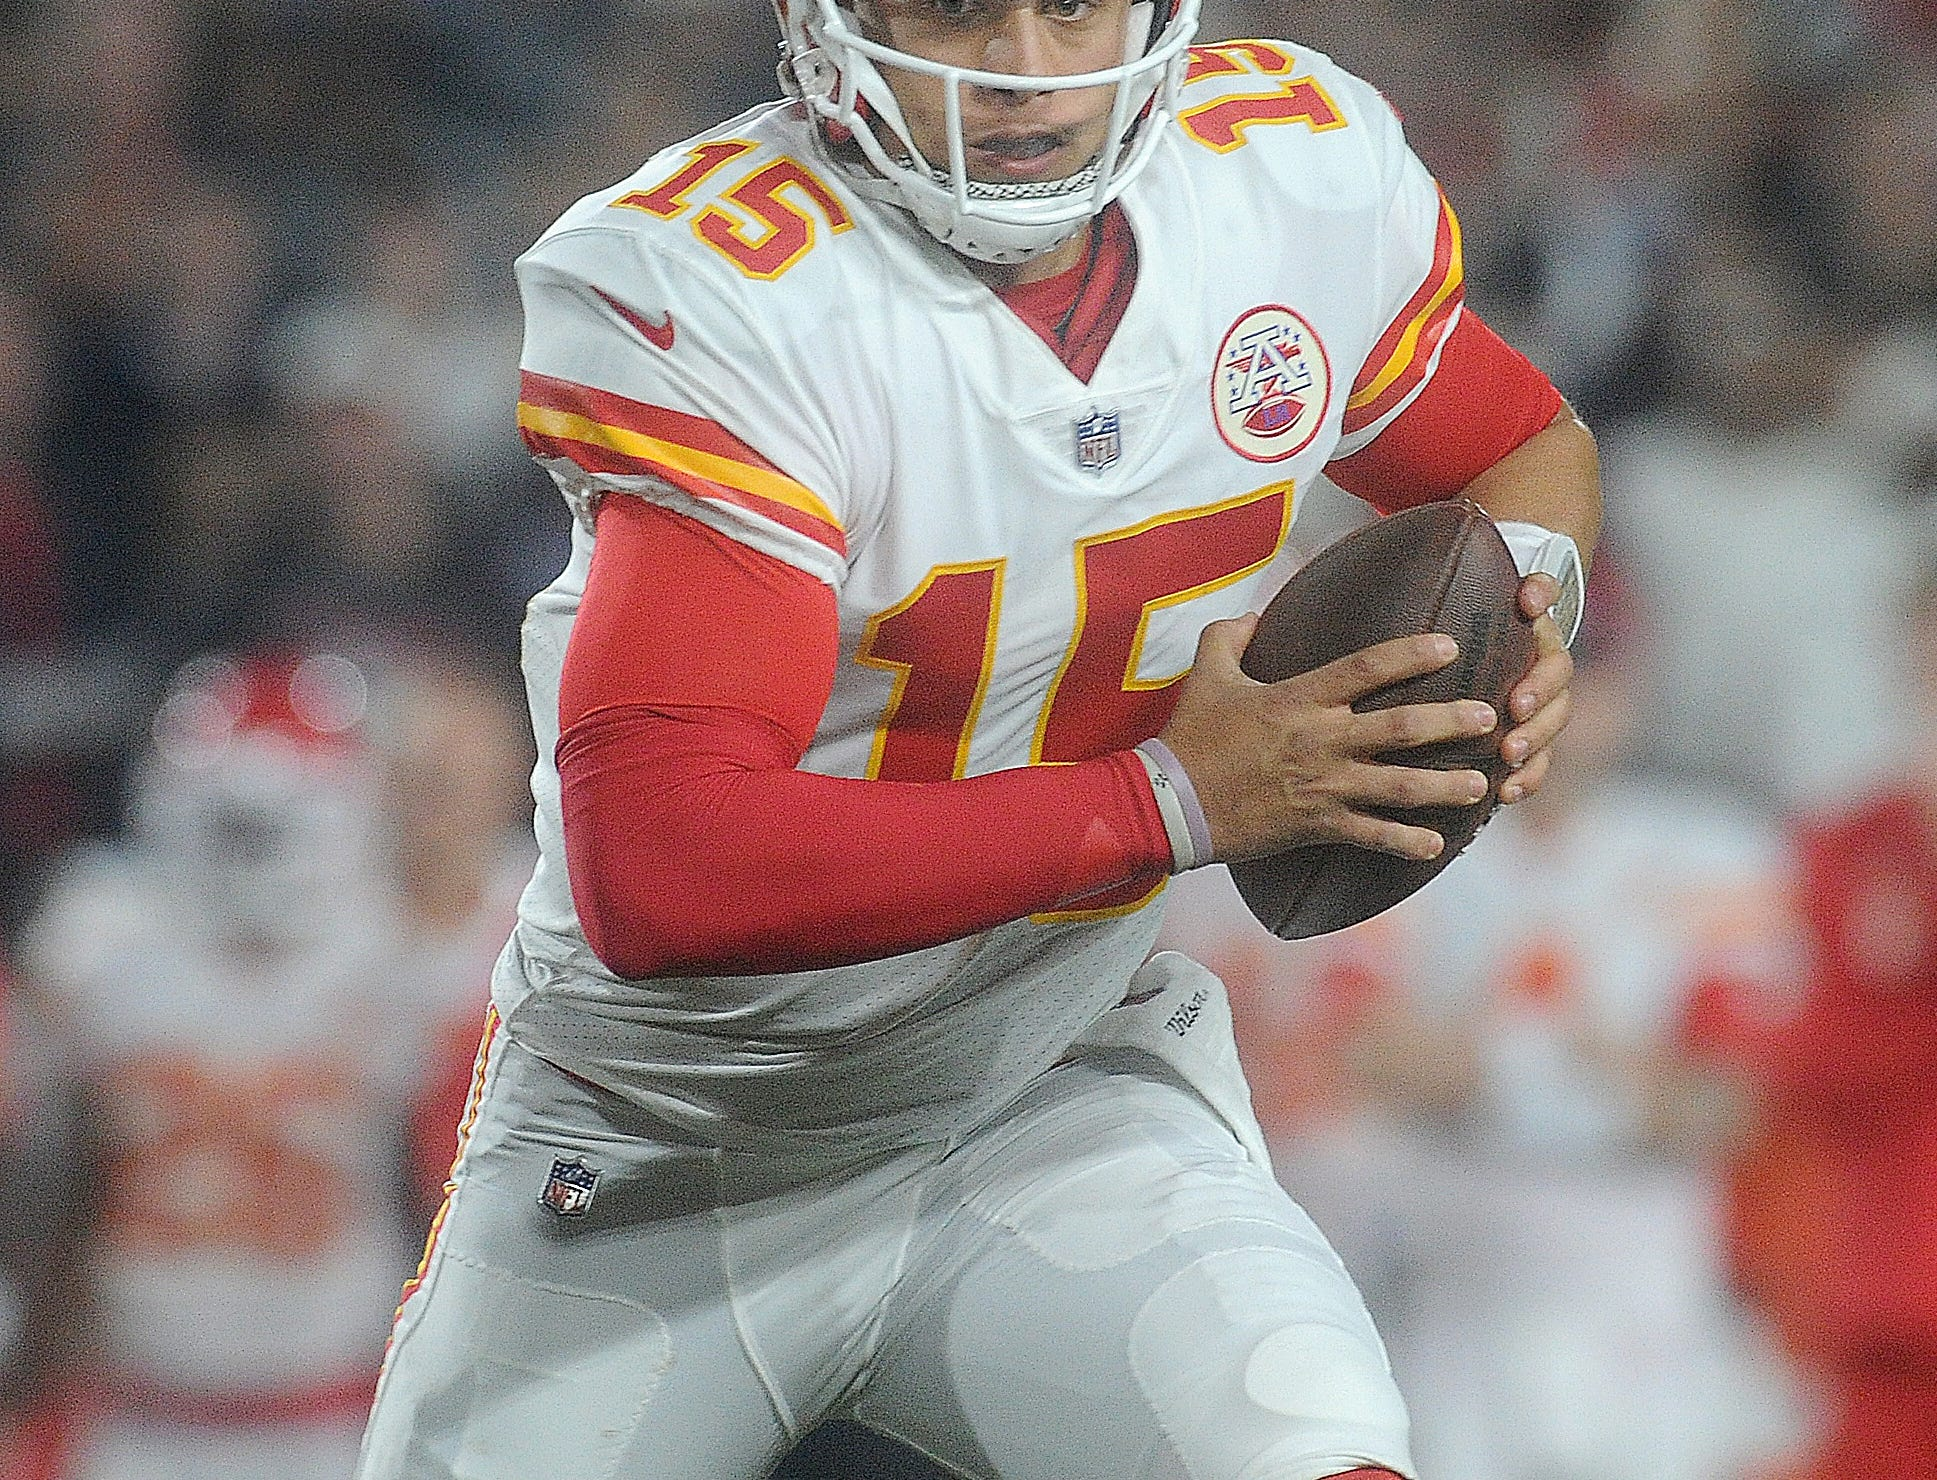 The Chiefs' Patrick Mahomes looks for a receiver against the Rams on Monday night. Mahomes completed 33 of 46 passes for 478 yards and six touchdowns with three interceptions.